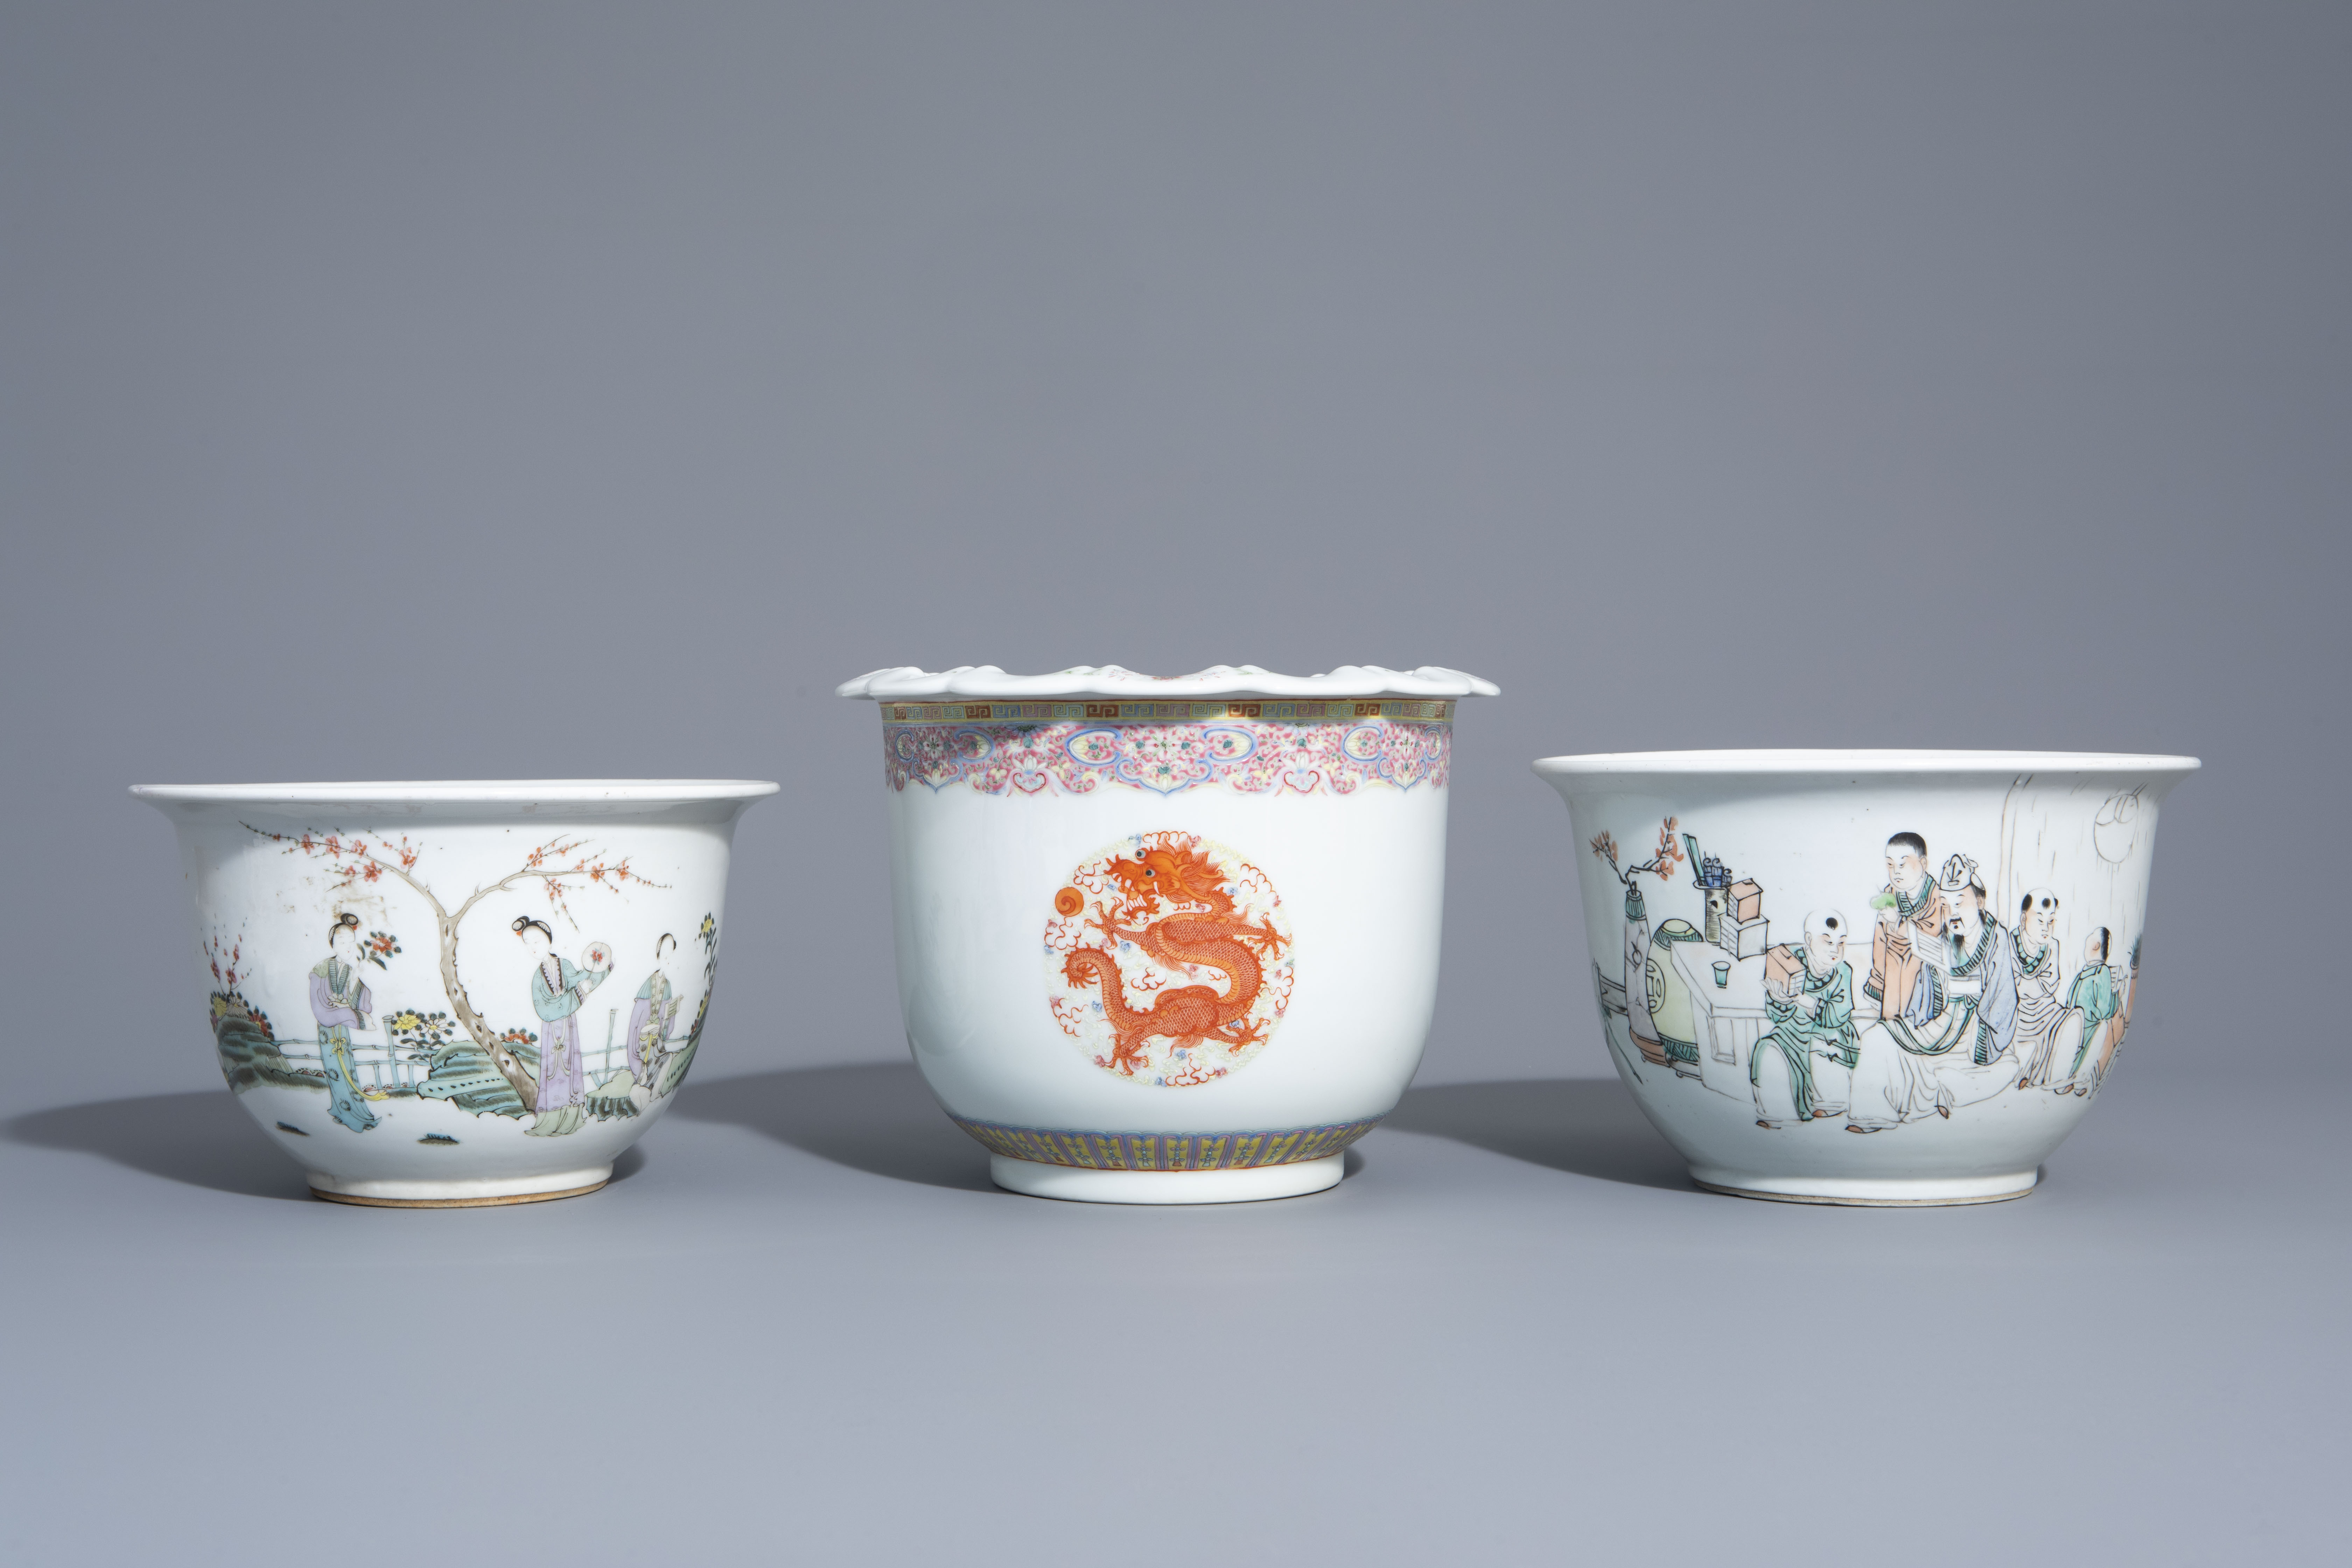 Three Chinese famille rose and qianjiang cai jardinires with different designs, 19th/20th C. - Image 2 of 7